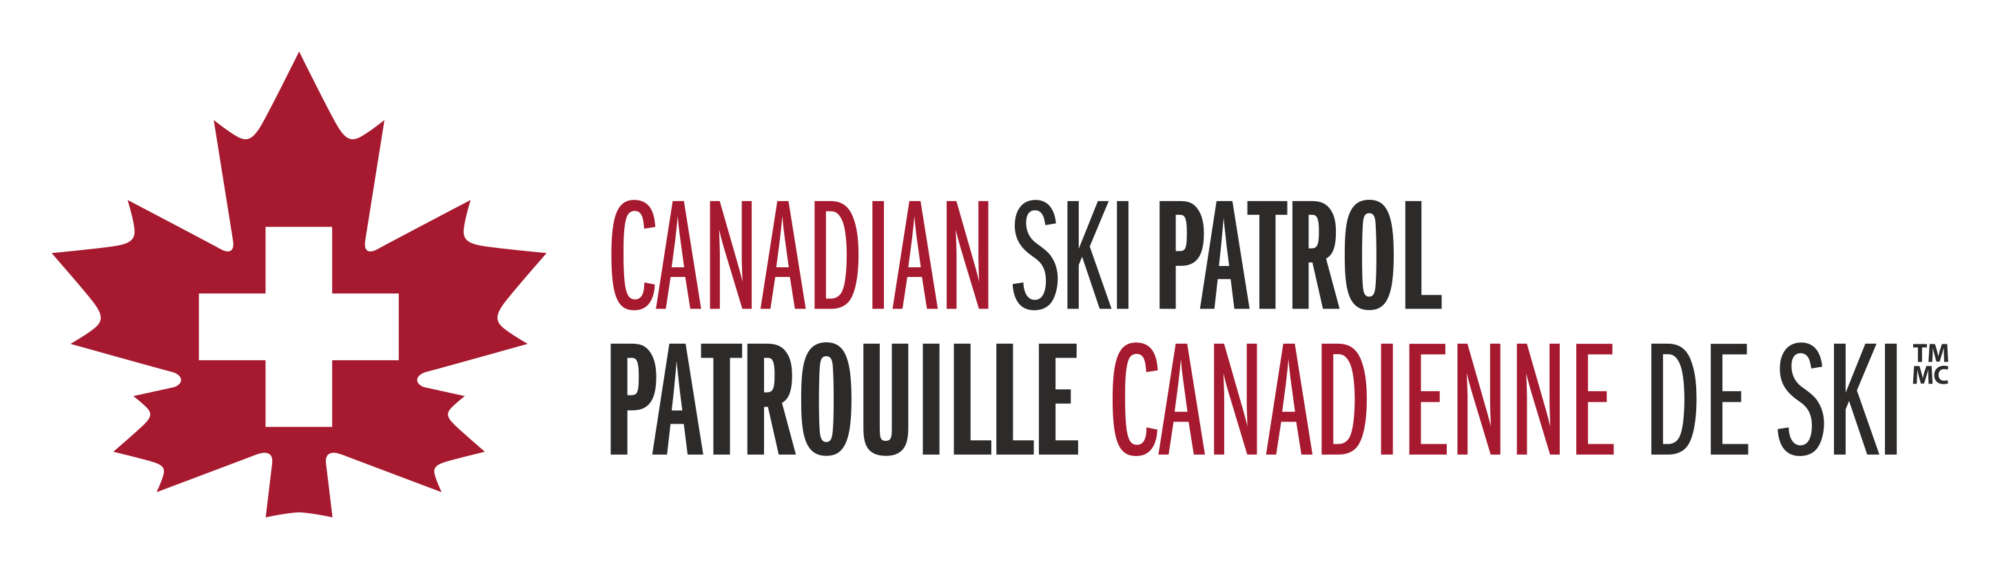 Helly-Hansen-to-Outfit-Canadian-Ski-Patrol-patroller-in-shed